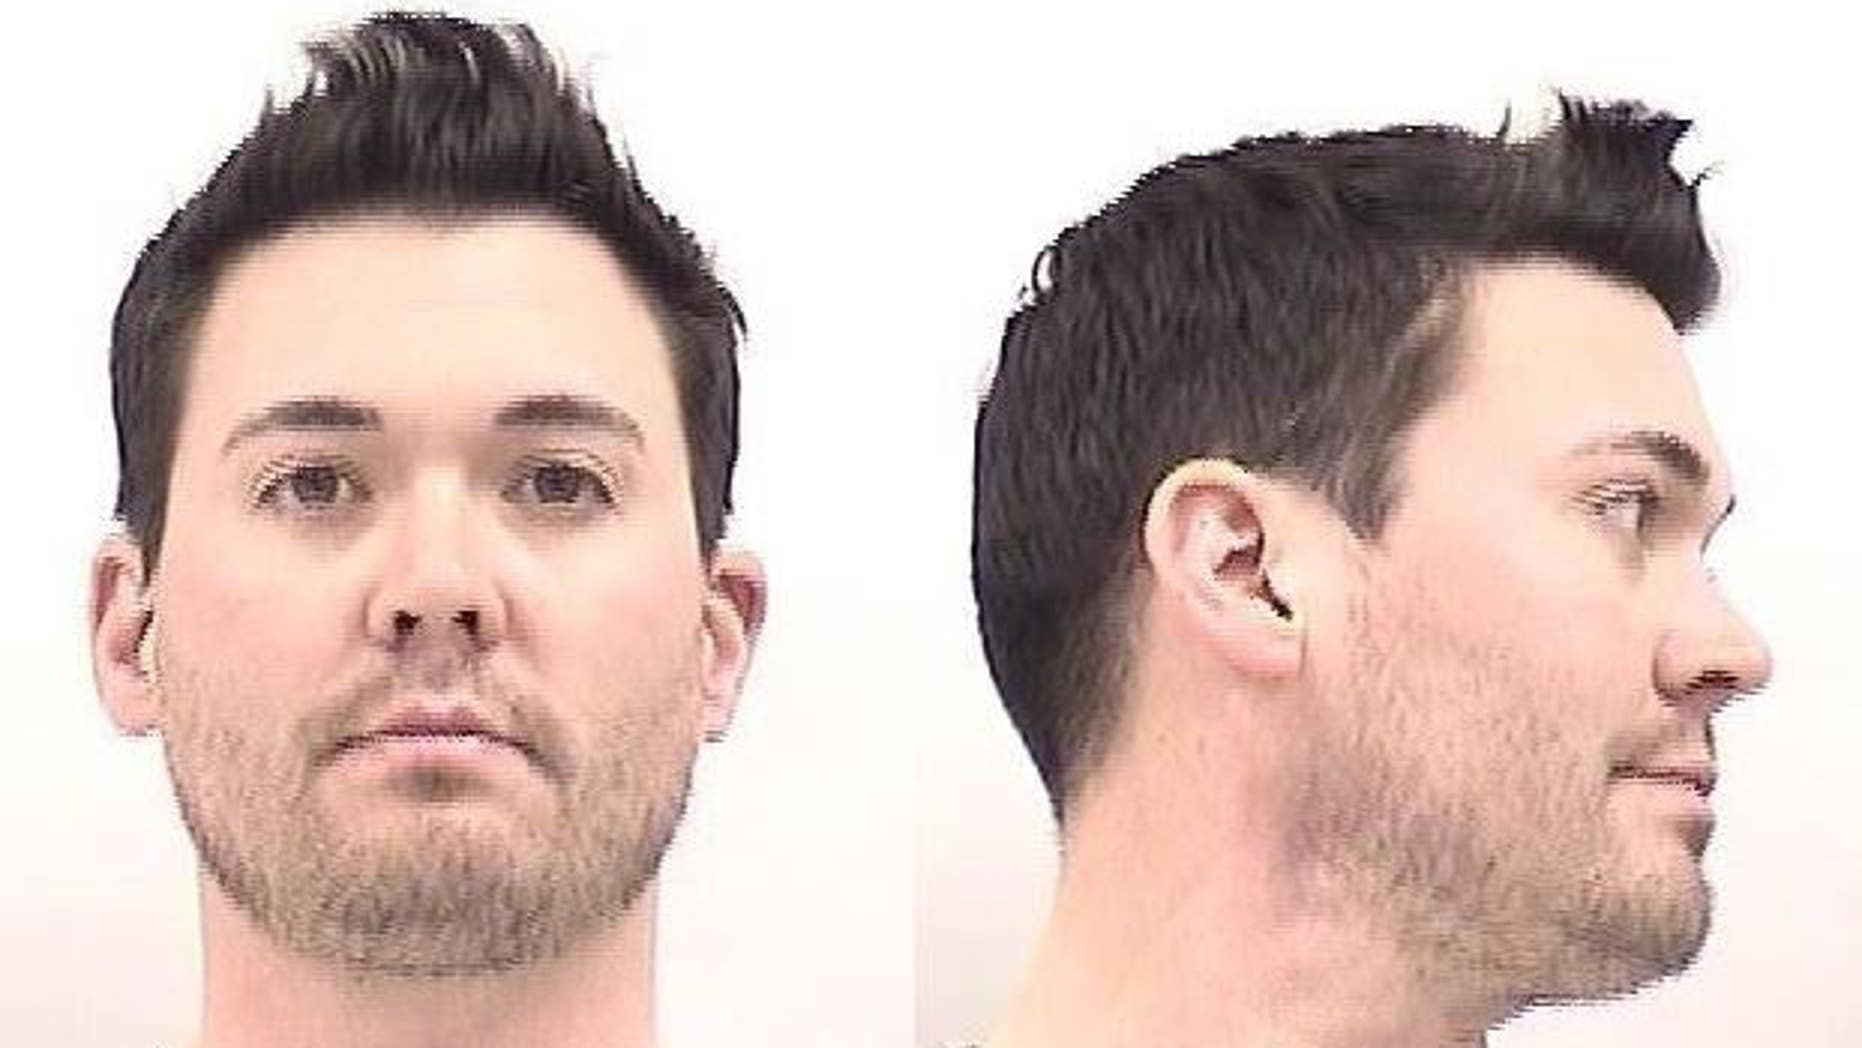 Michael J. Galvin was acquitted by a Colorado jury in the case of a negligent homicide. (Colorado Springs Police Department)